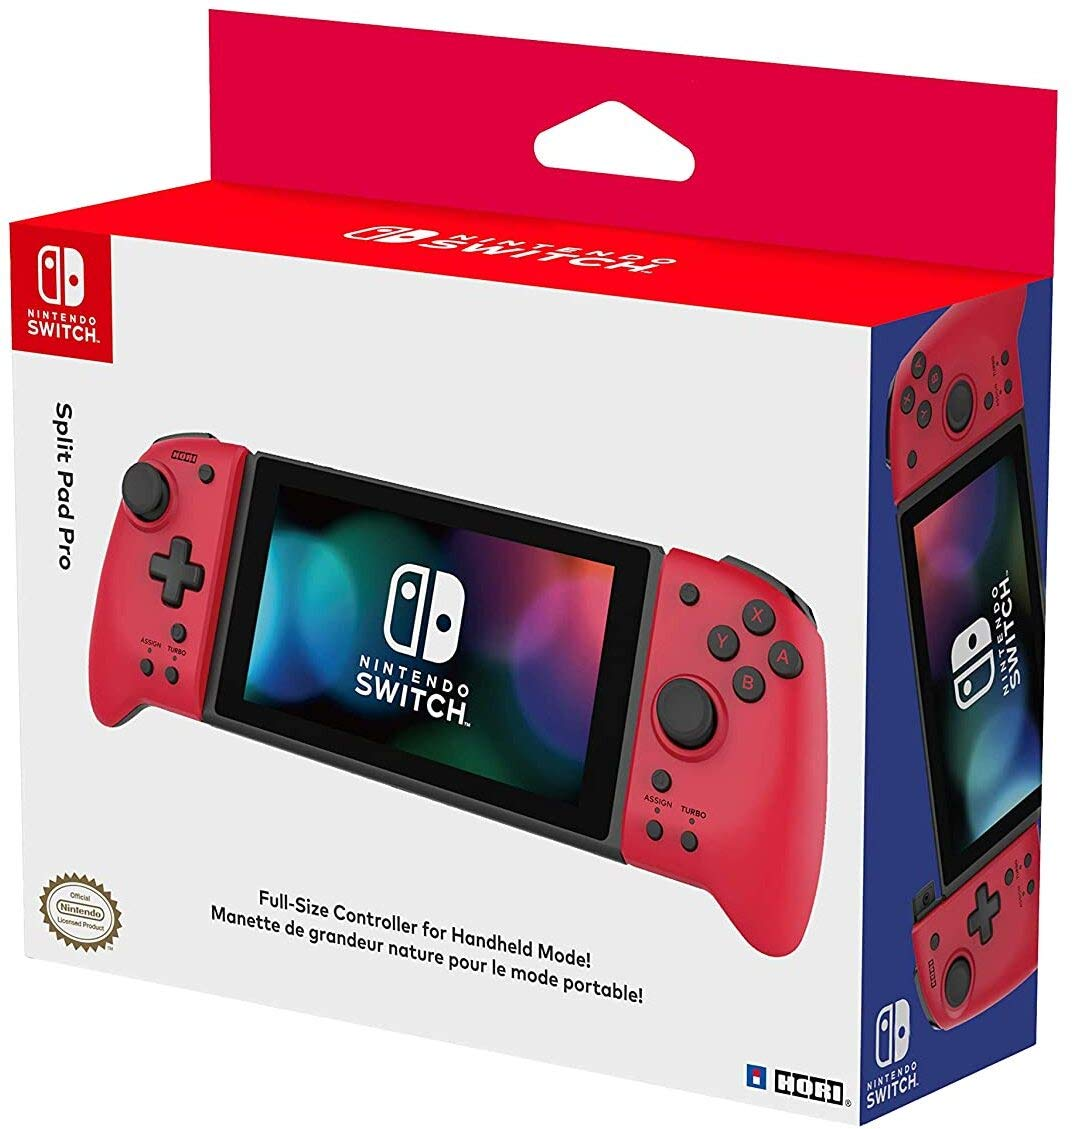 Hori Nintendo Switch Split Pad Pro (Red) Ergonomic Controller for Handheld Mode - Officially Licensed By Nintendo - Nintendo Switch